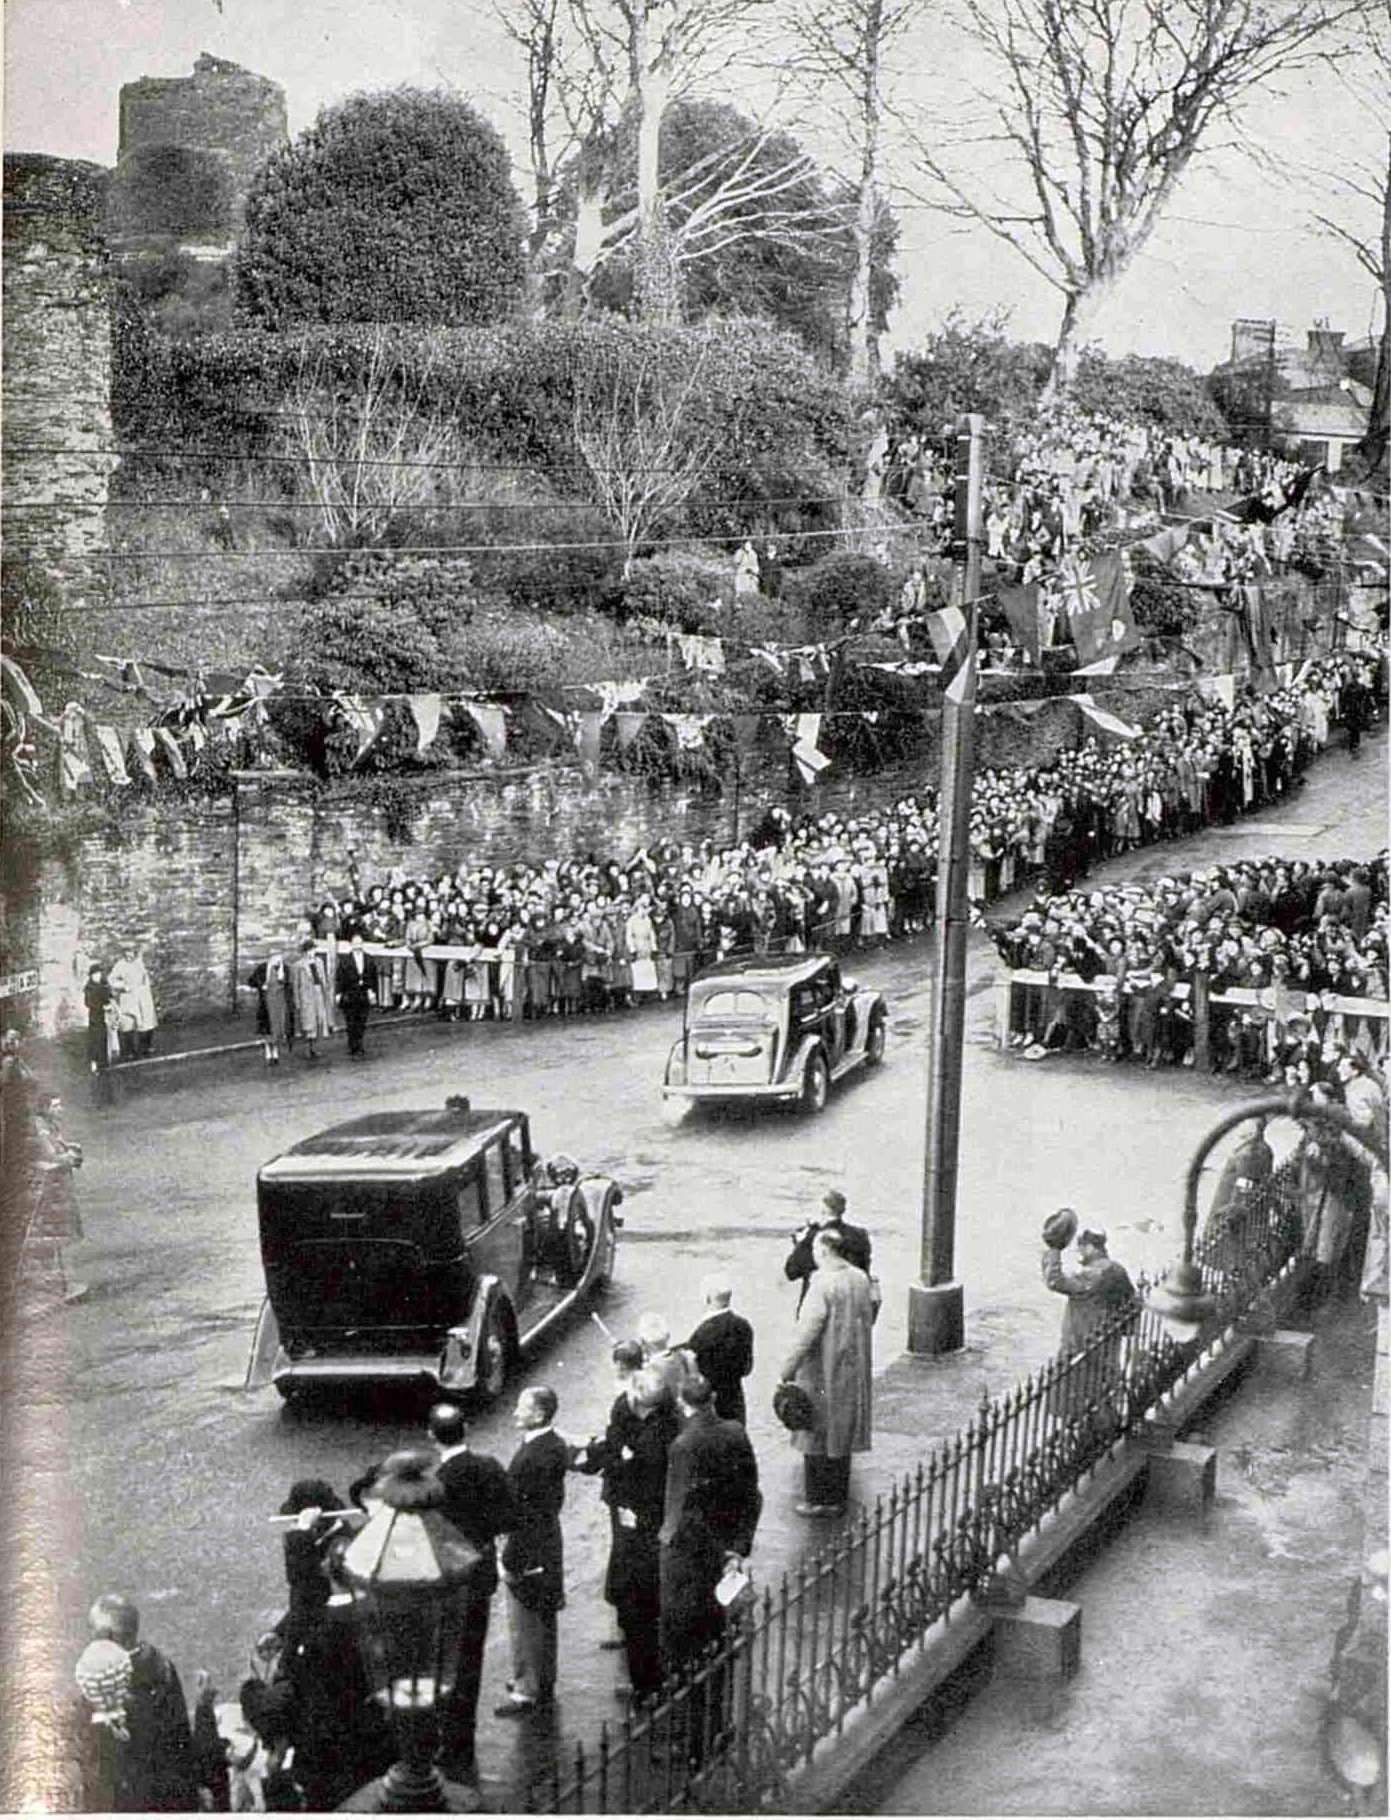 King George arrives outside the Town Hall for his 1937 visit.